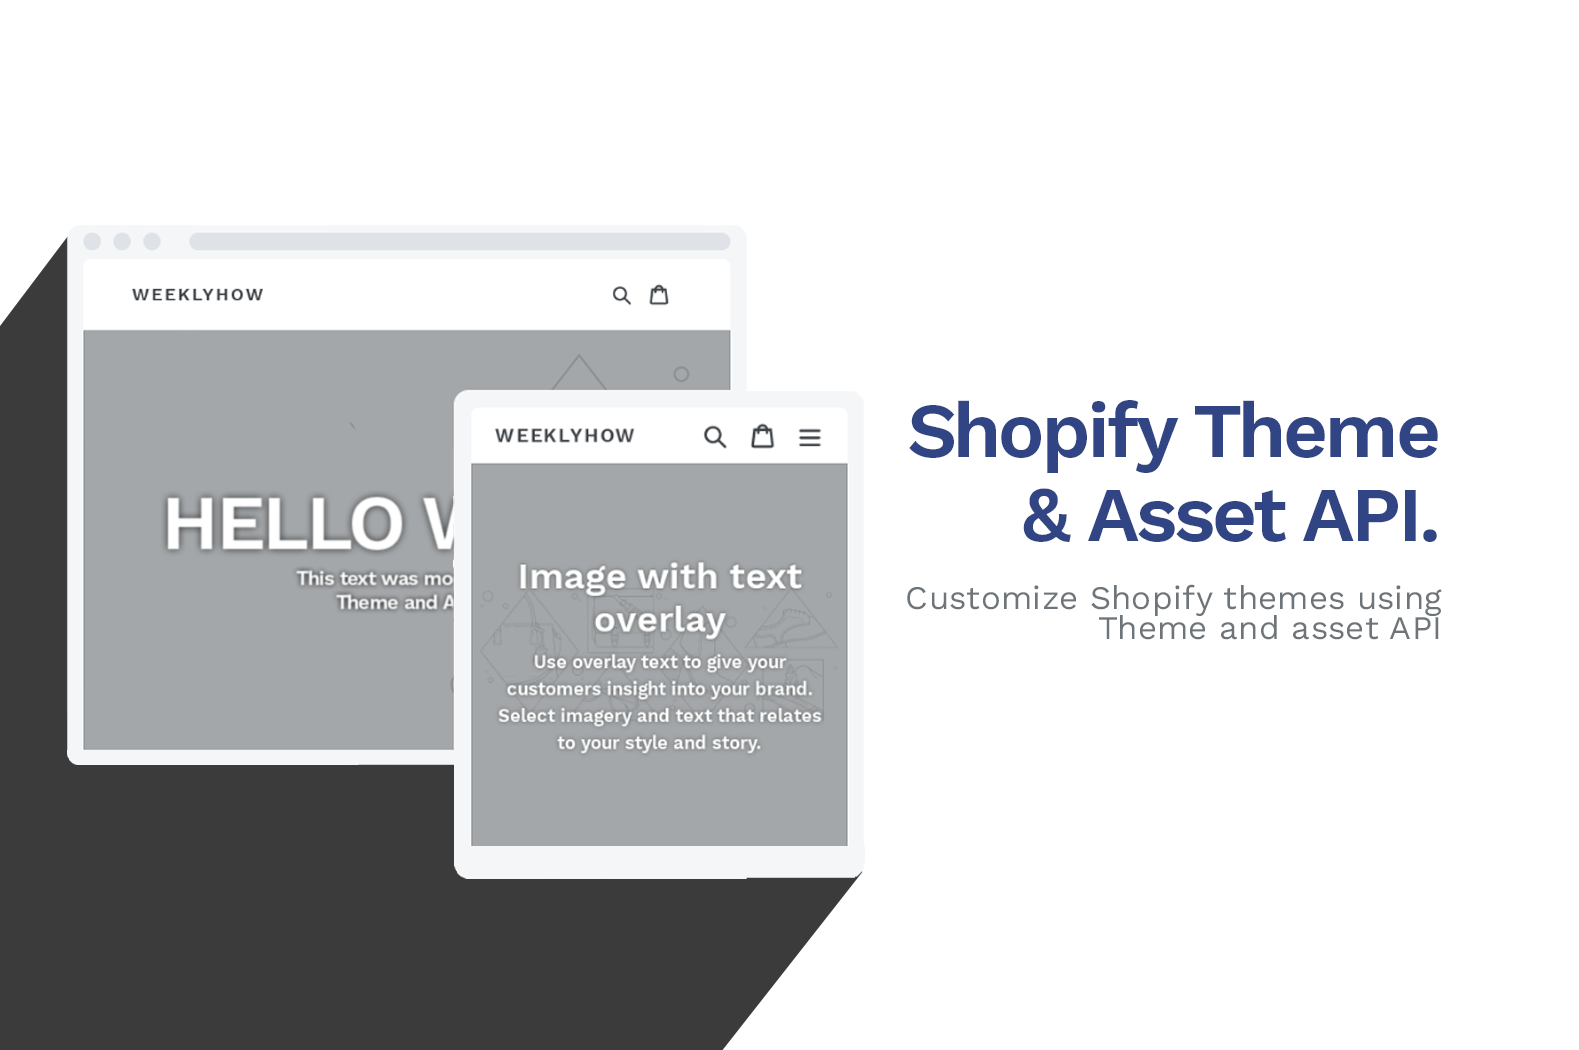 How To Customize Shopify Themes with Theme + Asset API - WeeklyHow